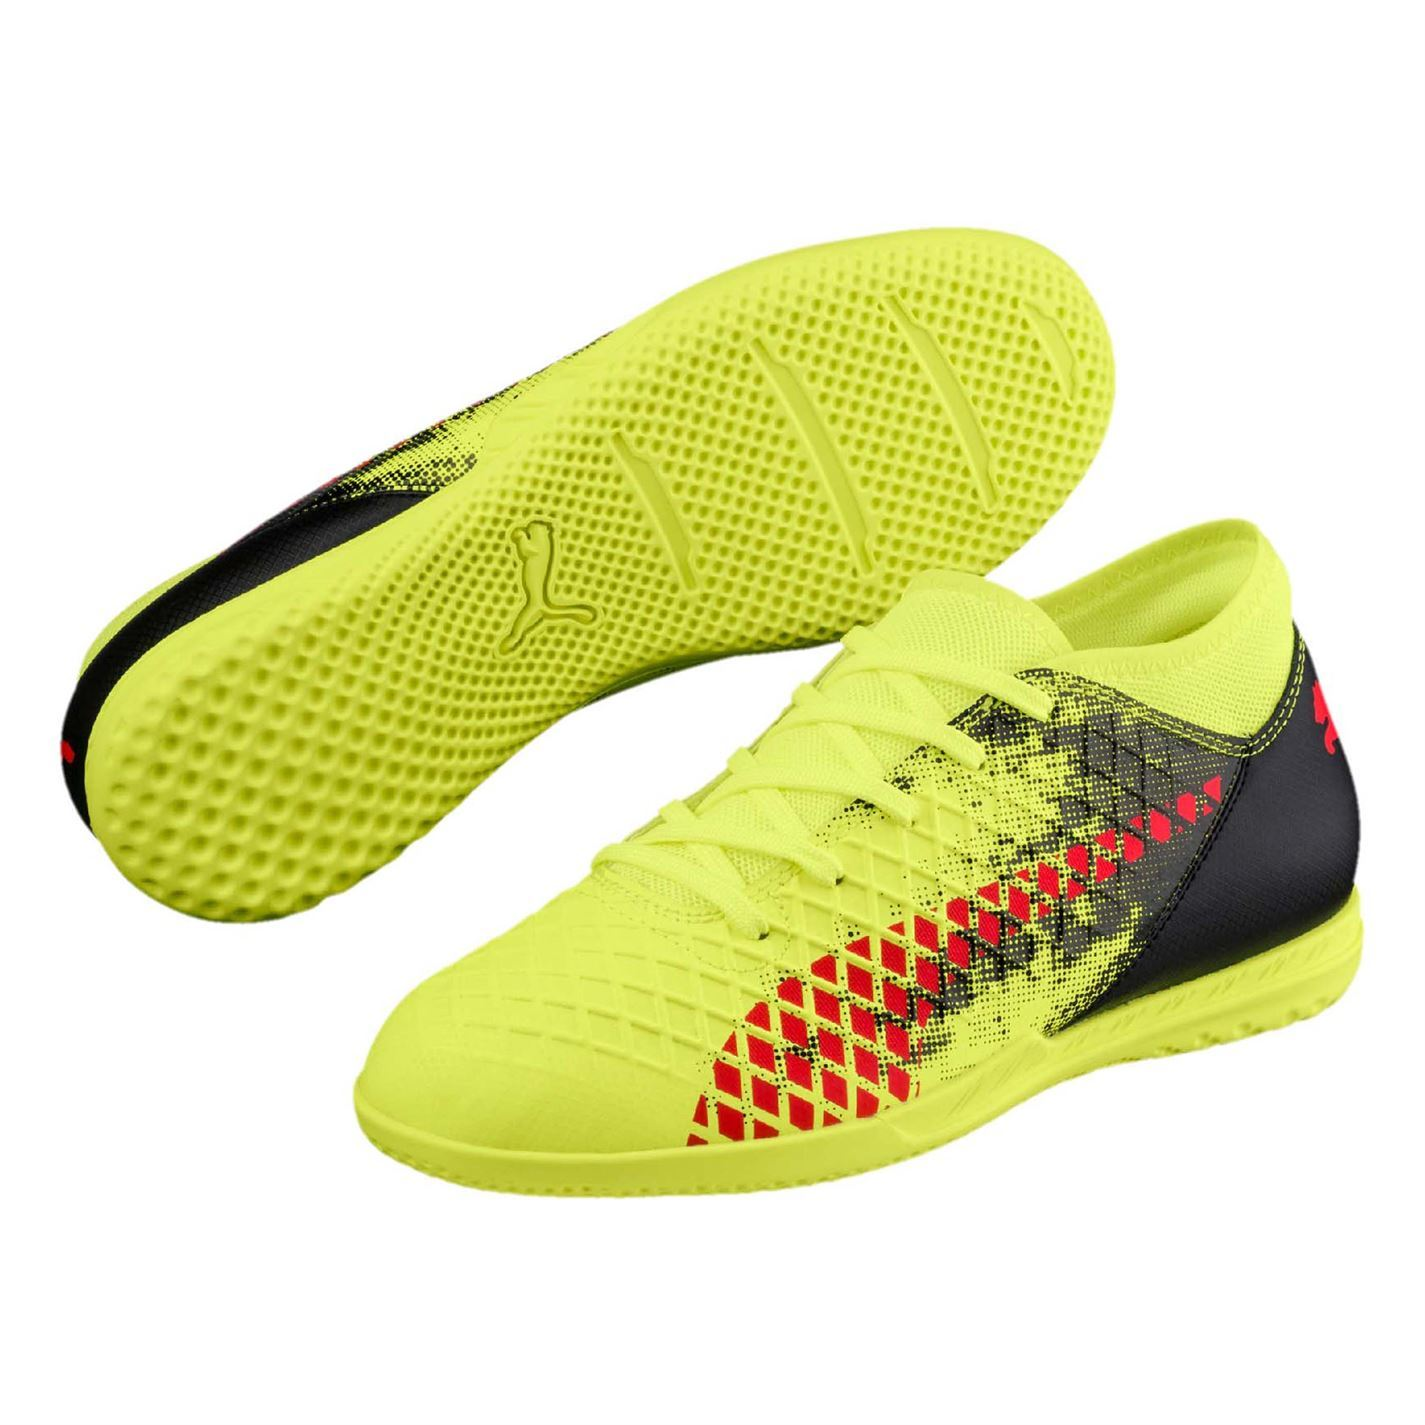 b1219efdf64d8 Details about Puma Future 18.4 Indoor Football Trainers Juniors Yellow  Soccer Shoes Sneakers